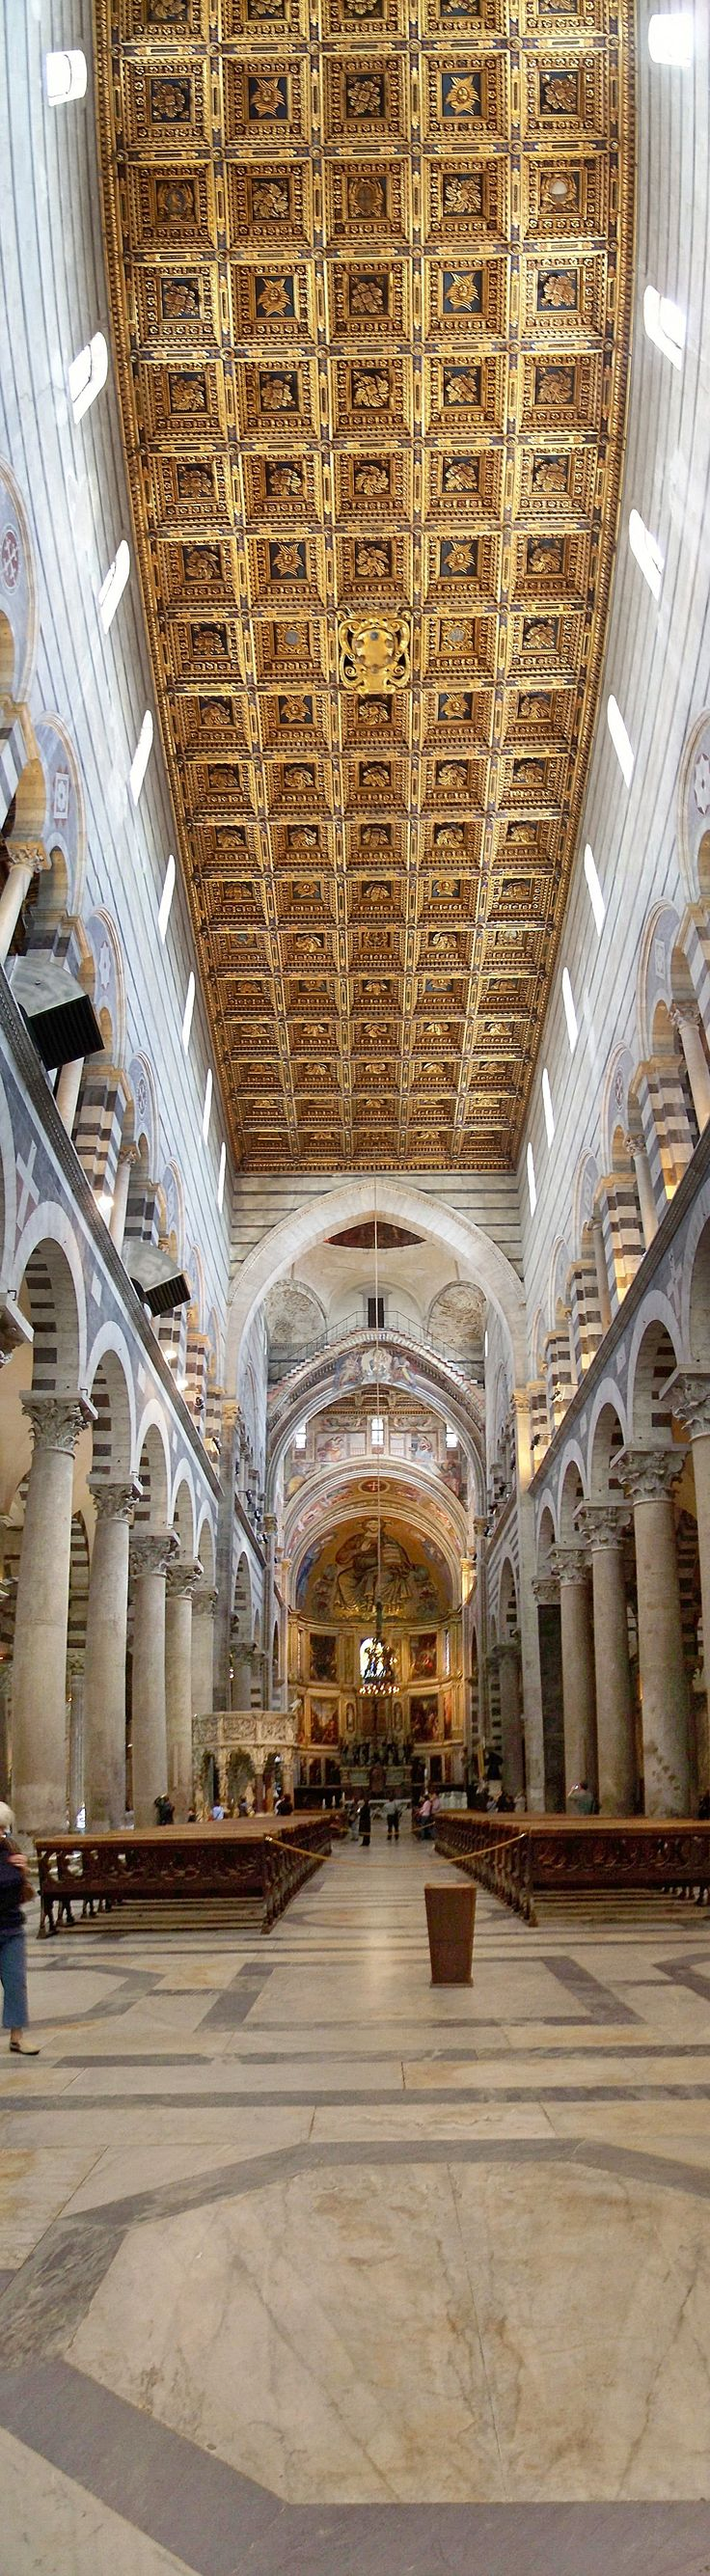 *ITALY ~ Interior of the Duomo di Pisa, a cathedral in Pisa, Tuscany, (by Lofty)